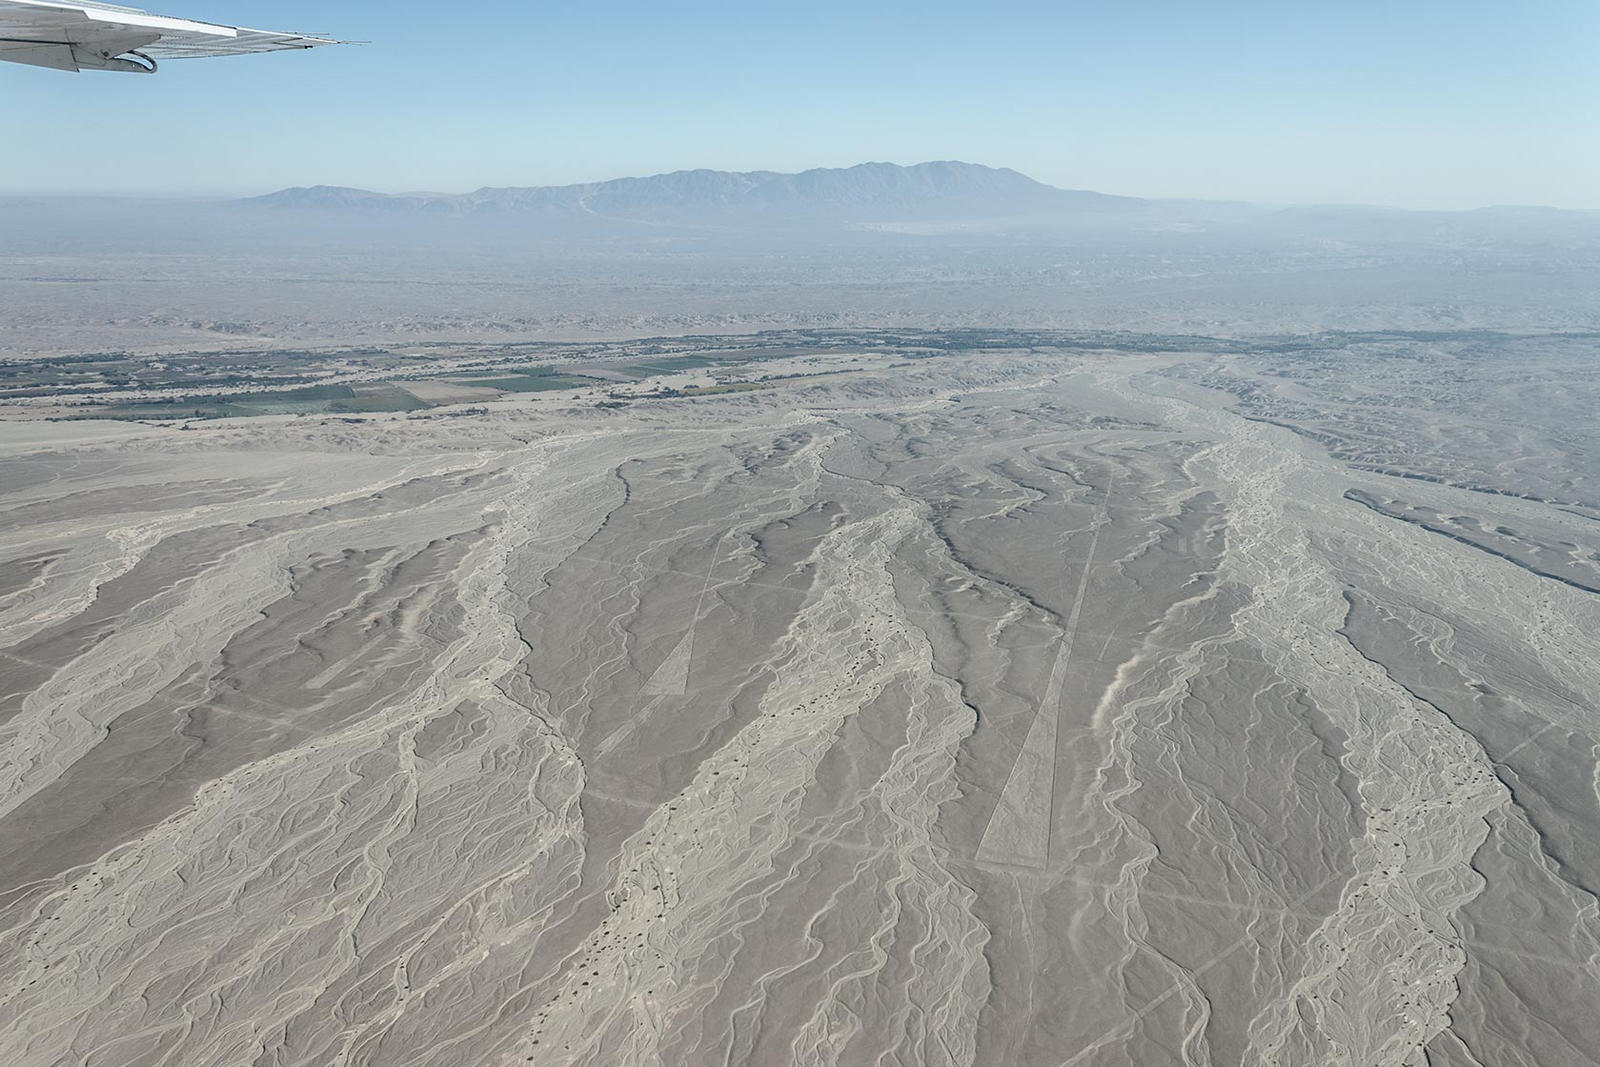 Nazca Lines by TarJakArt